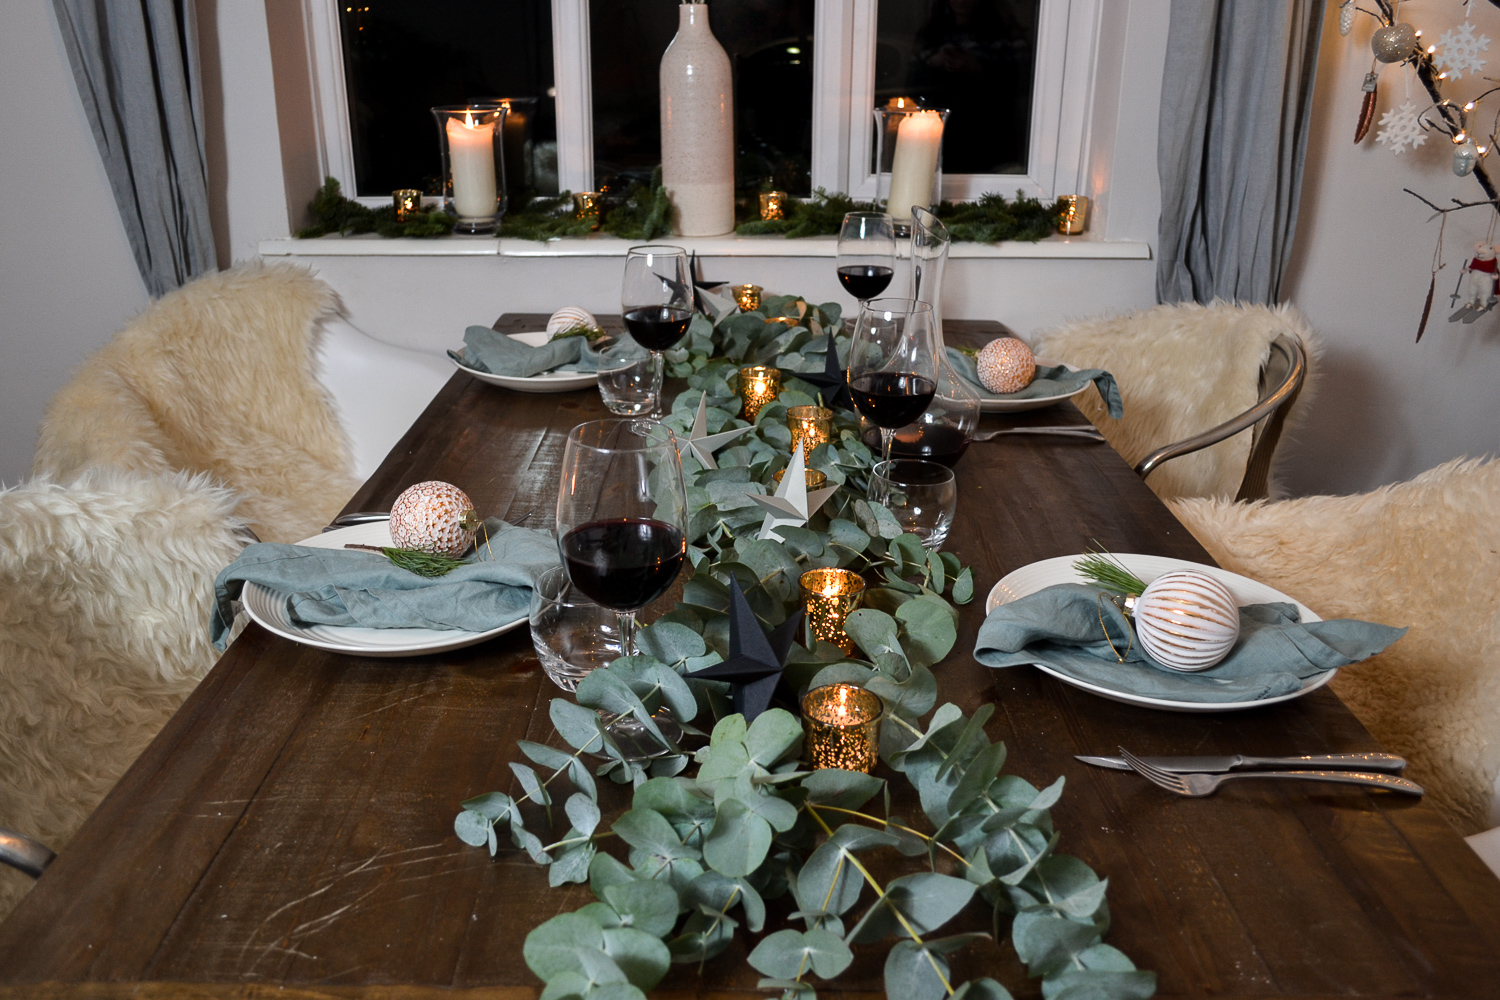 Elizabeth_Christmas_Table__JoWoodfordPhoto.jpg